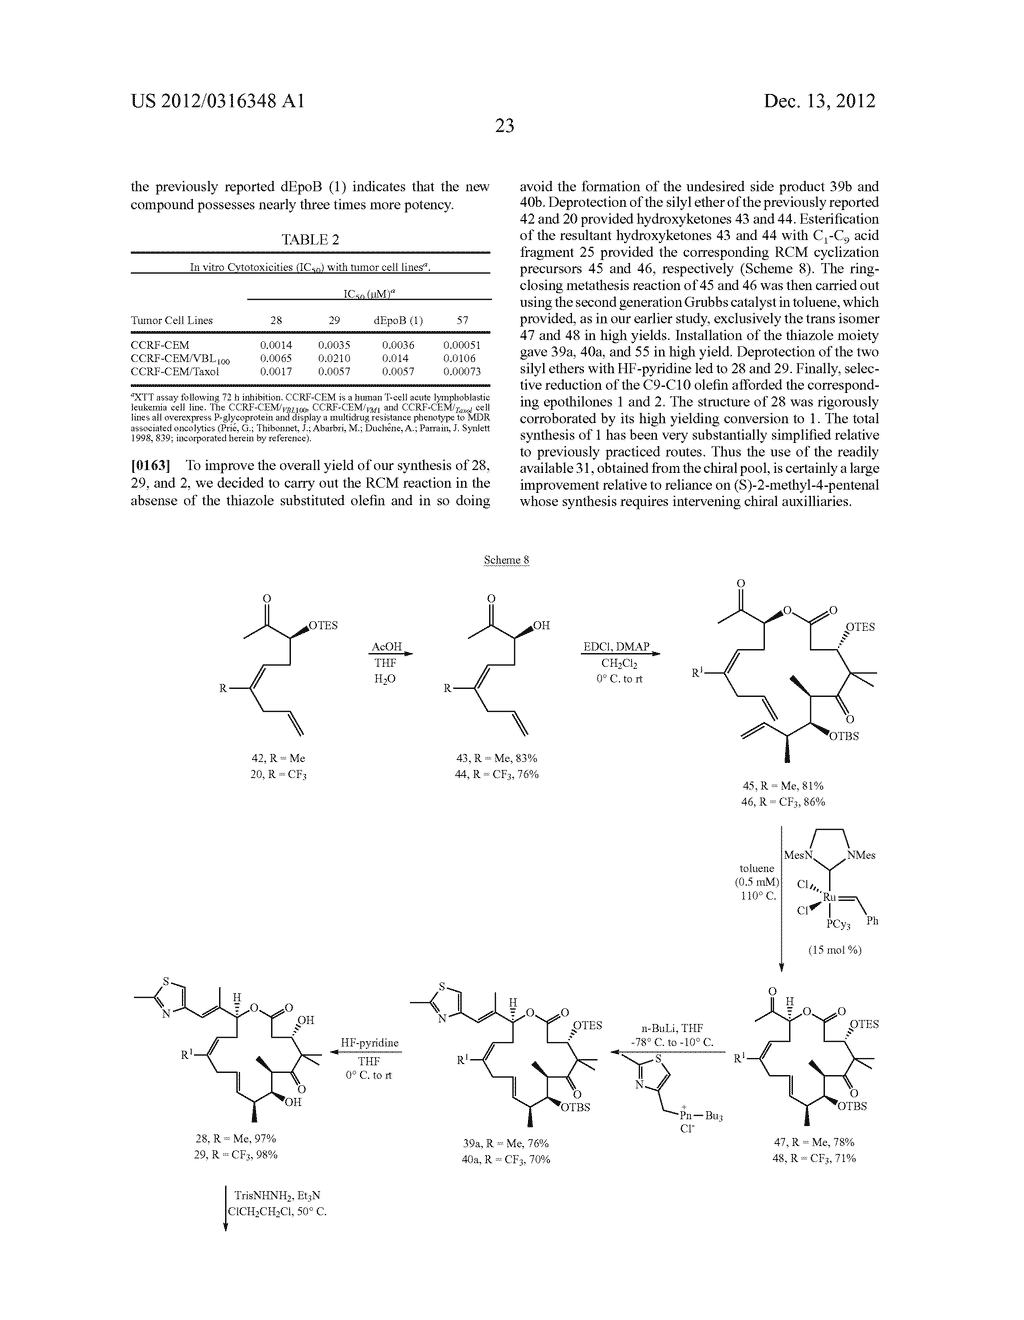 SYNTHESIS OF EPOTHILONES, INTERMEDIATES THERETO AND ANALOGUES THEREOF - diagram, schematic, and image 94